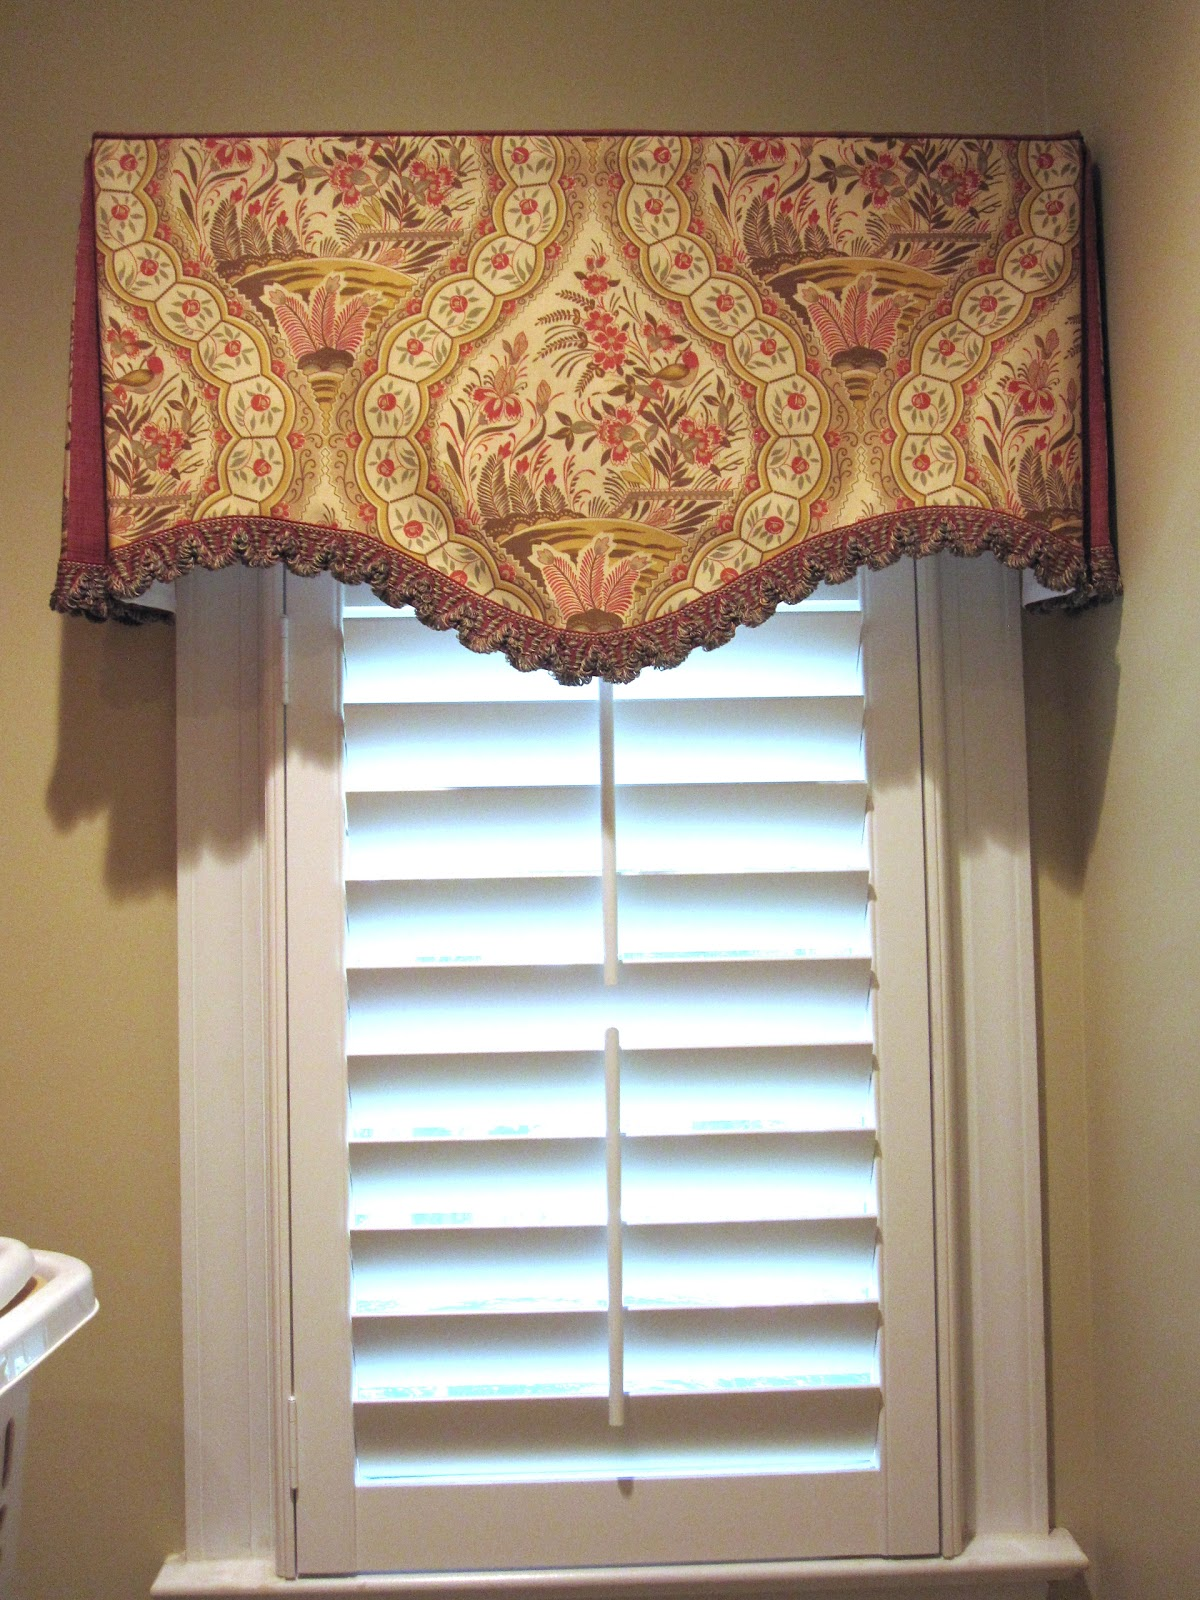 Cheeky Cognoscenti: Laundry Room Window Treatment Sewn from Scraps